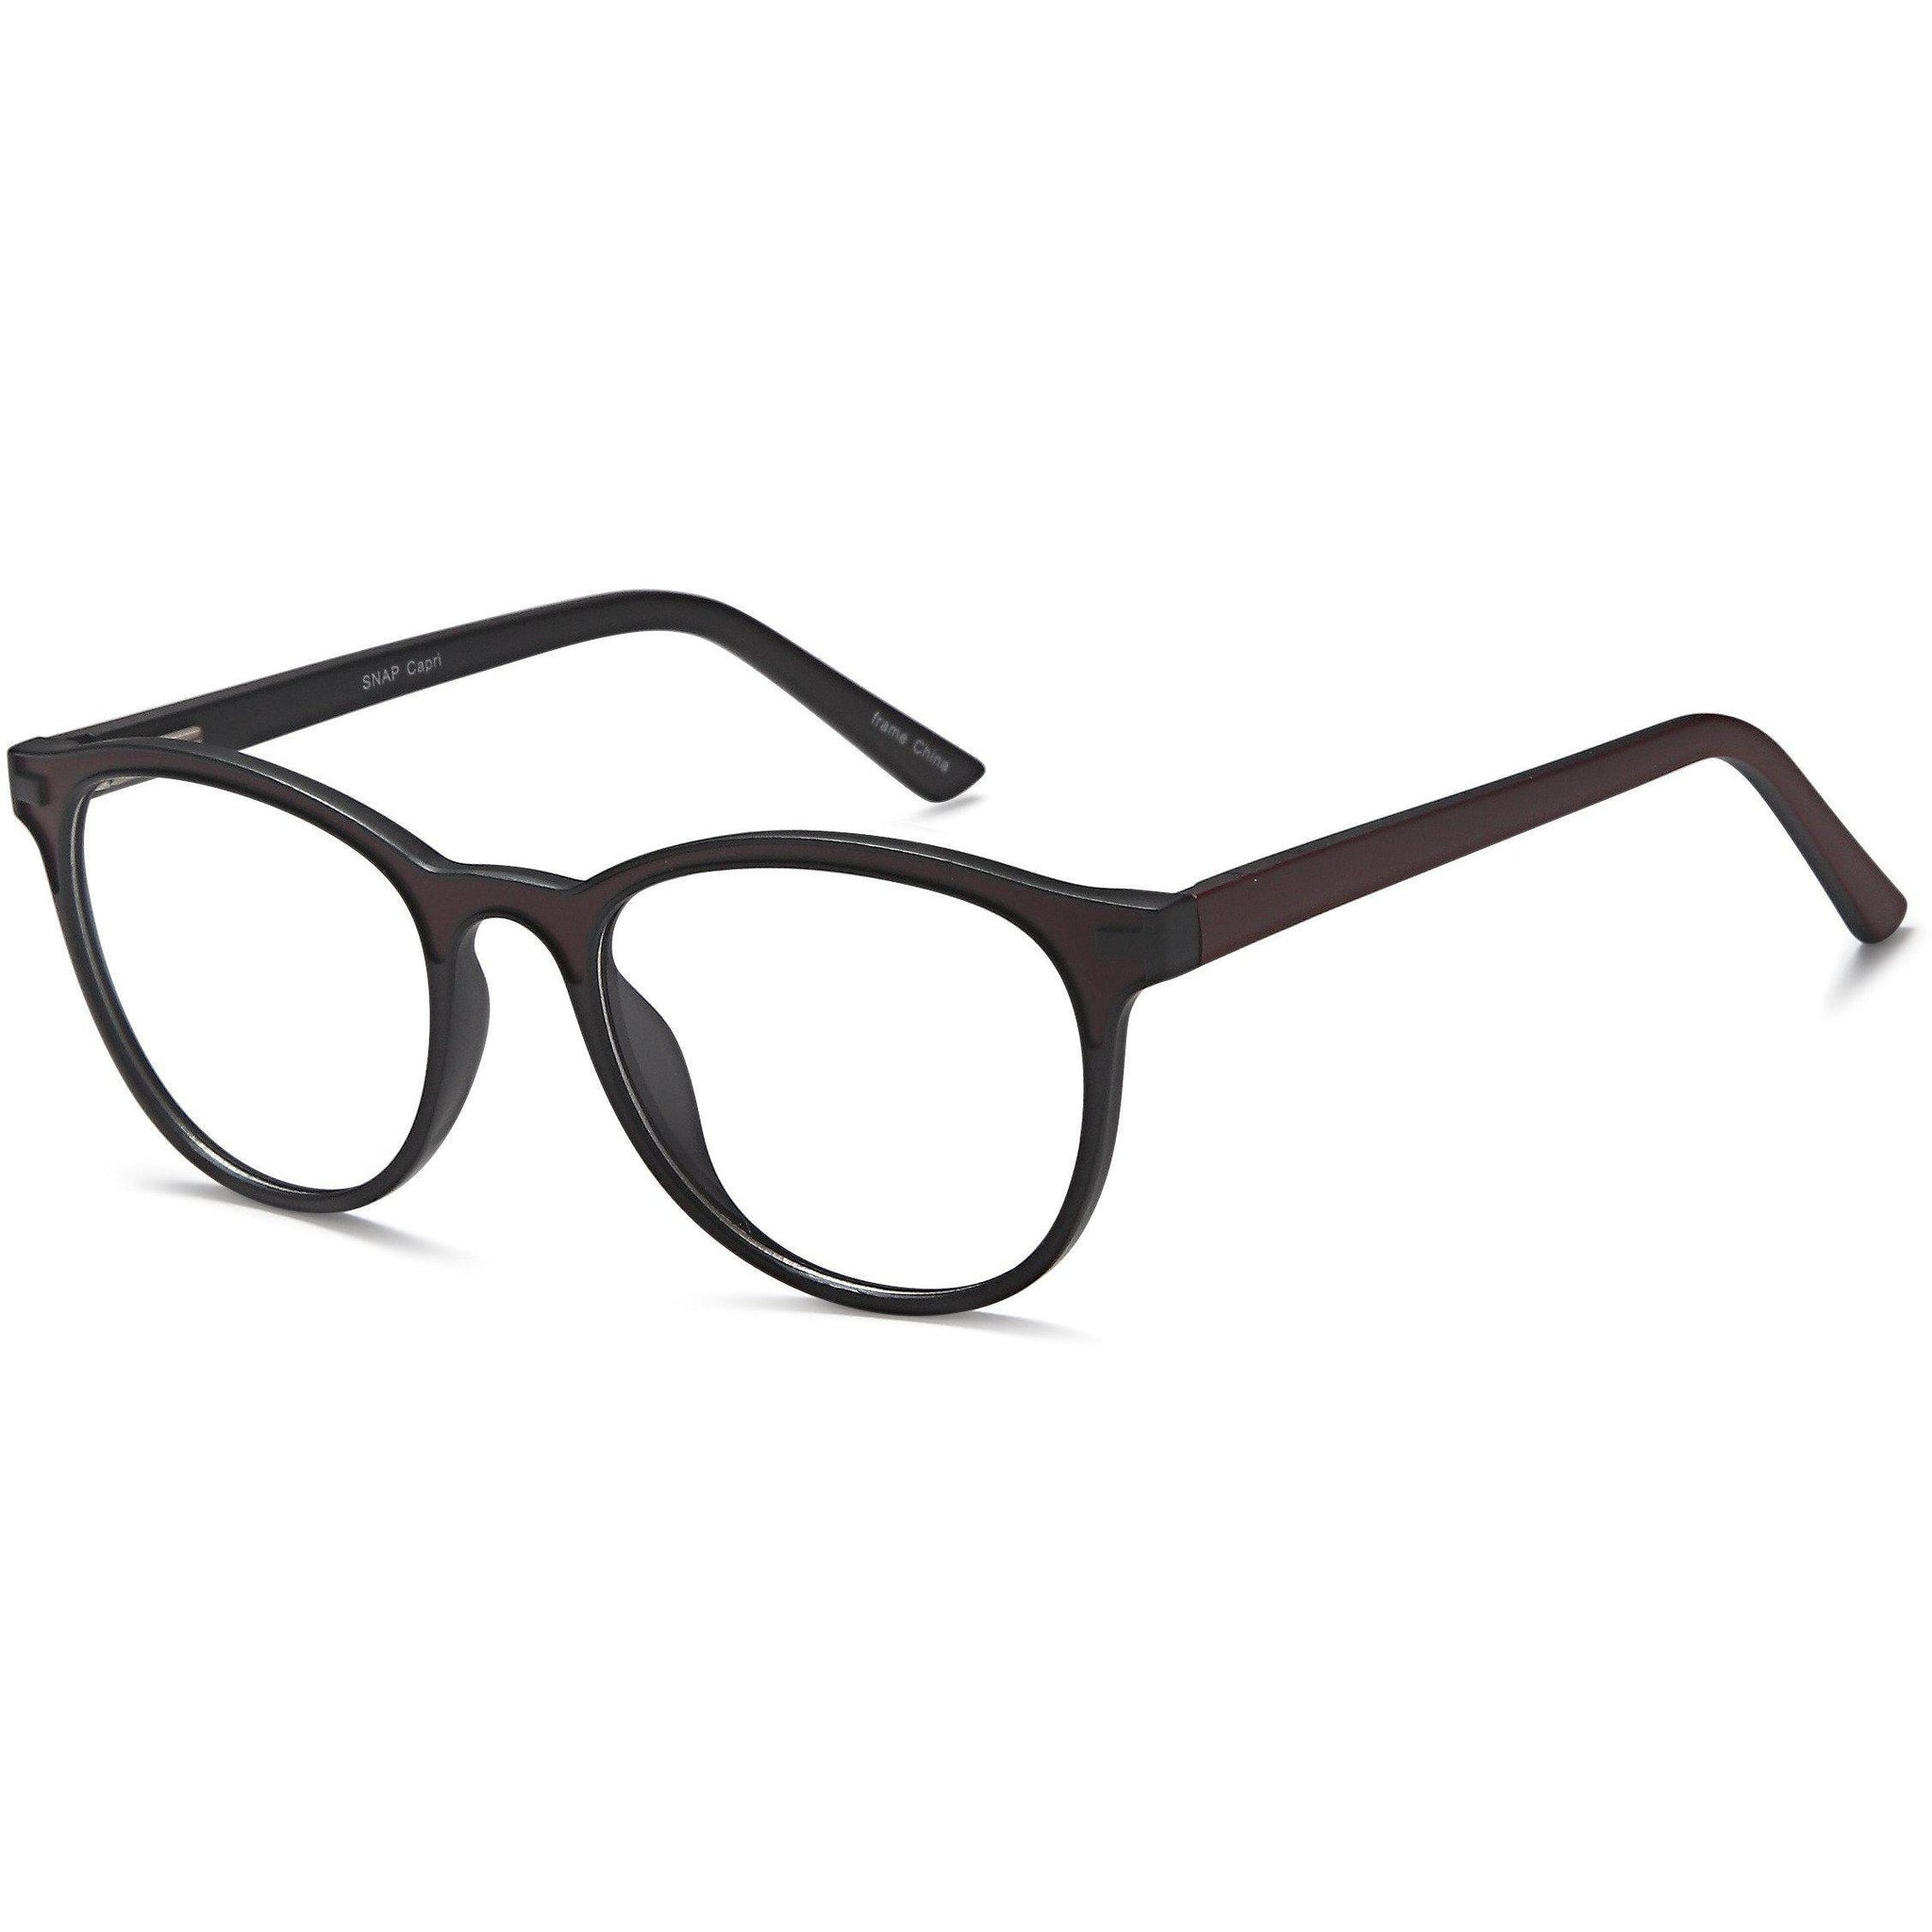 GEN Y Prescription Glasses SNAP Eyeglasses Frame